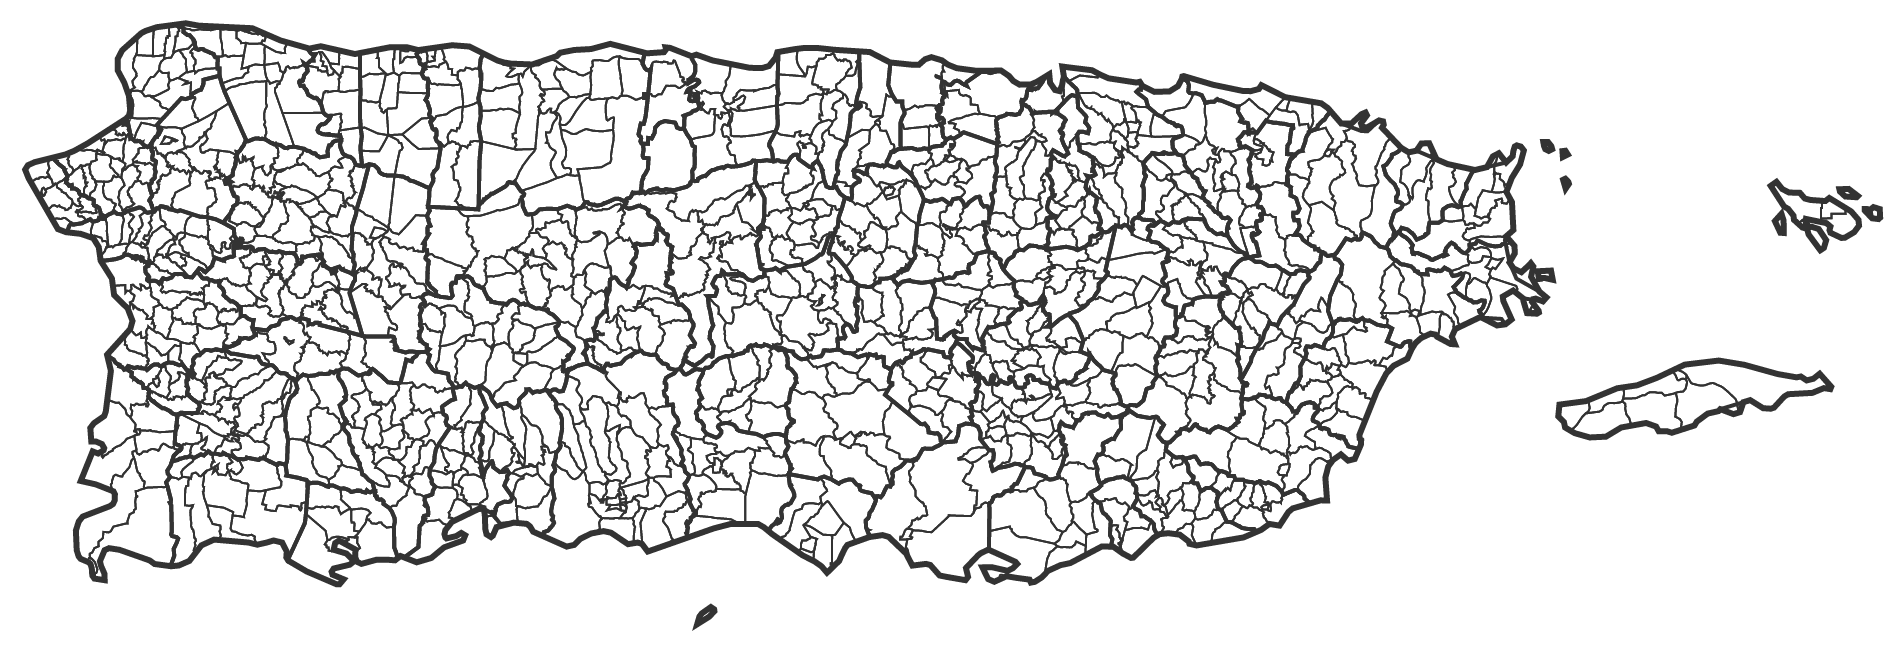 GitHub Miguelriosatlaspr Interactive Detailed Maps Of Puerto Rico - Political map of puerto rico